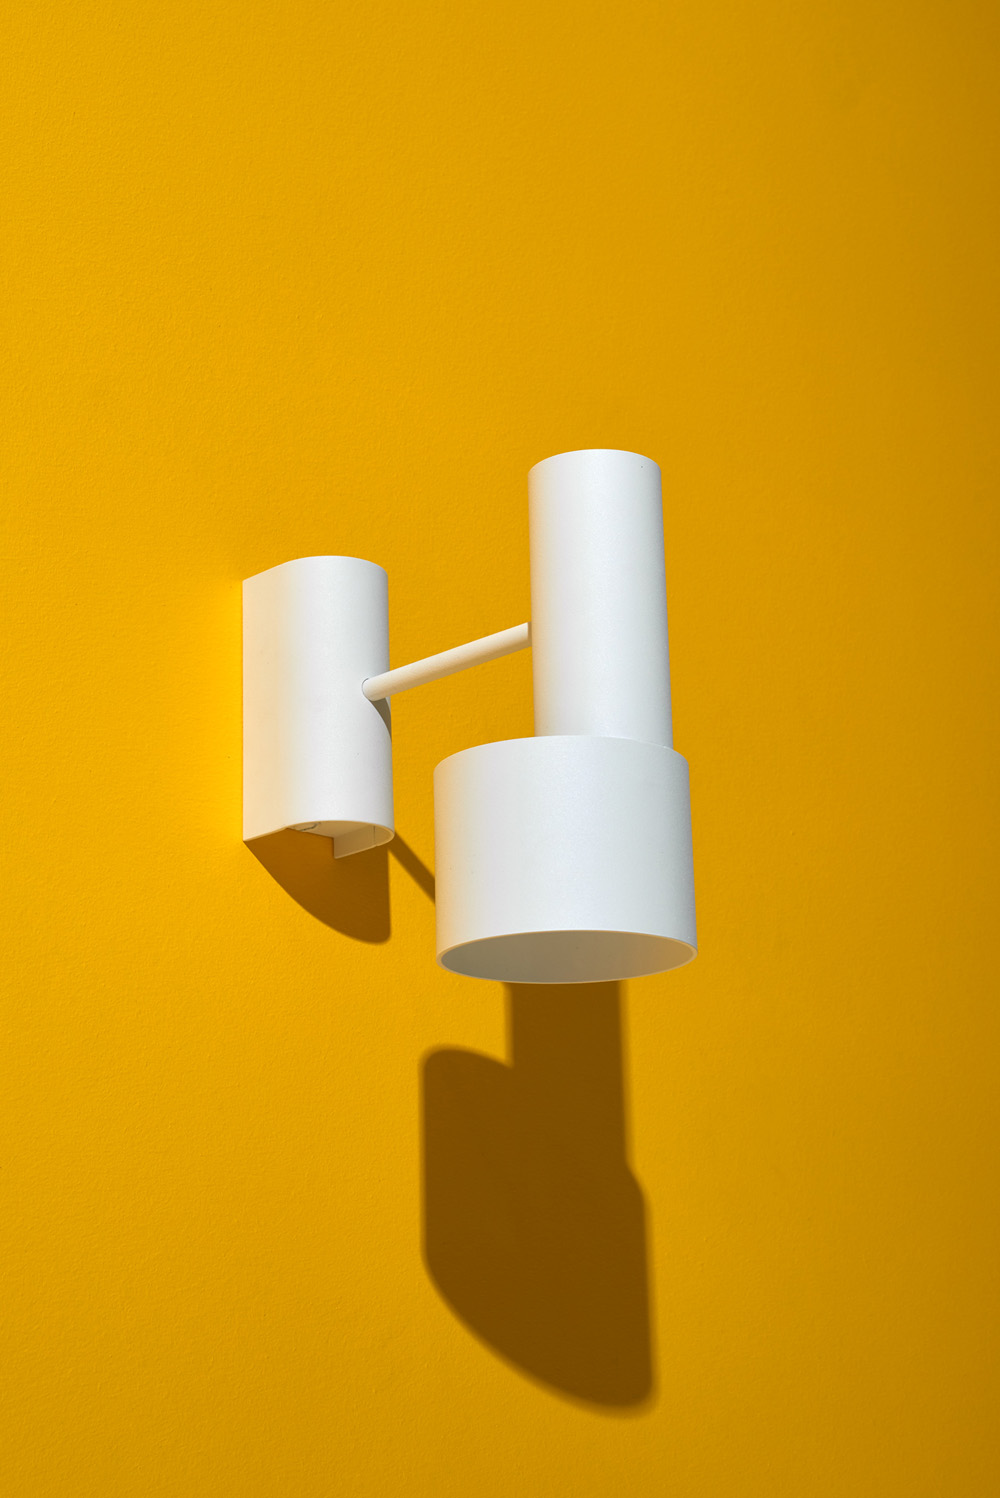 Tangent Wall Lamp by Frederik Kurzweg